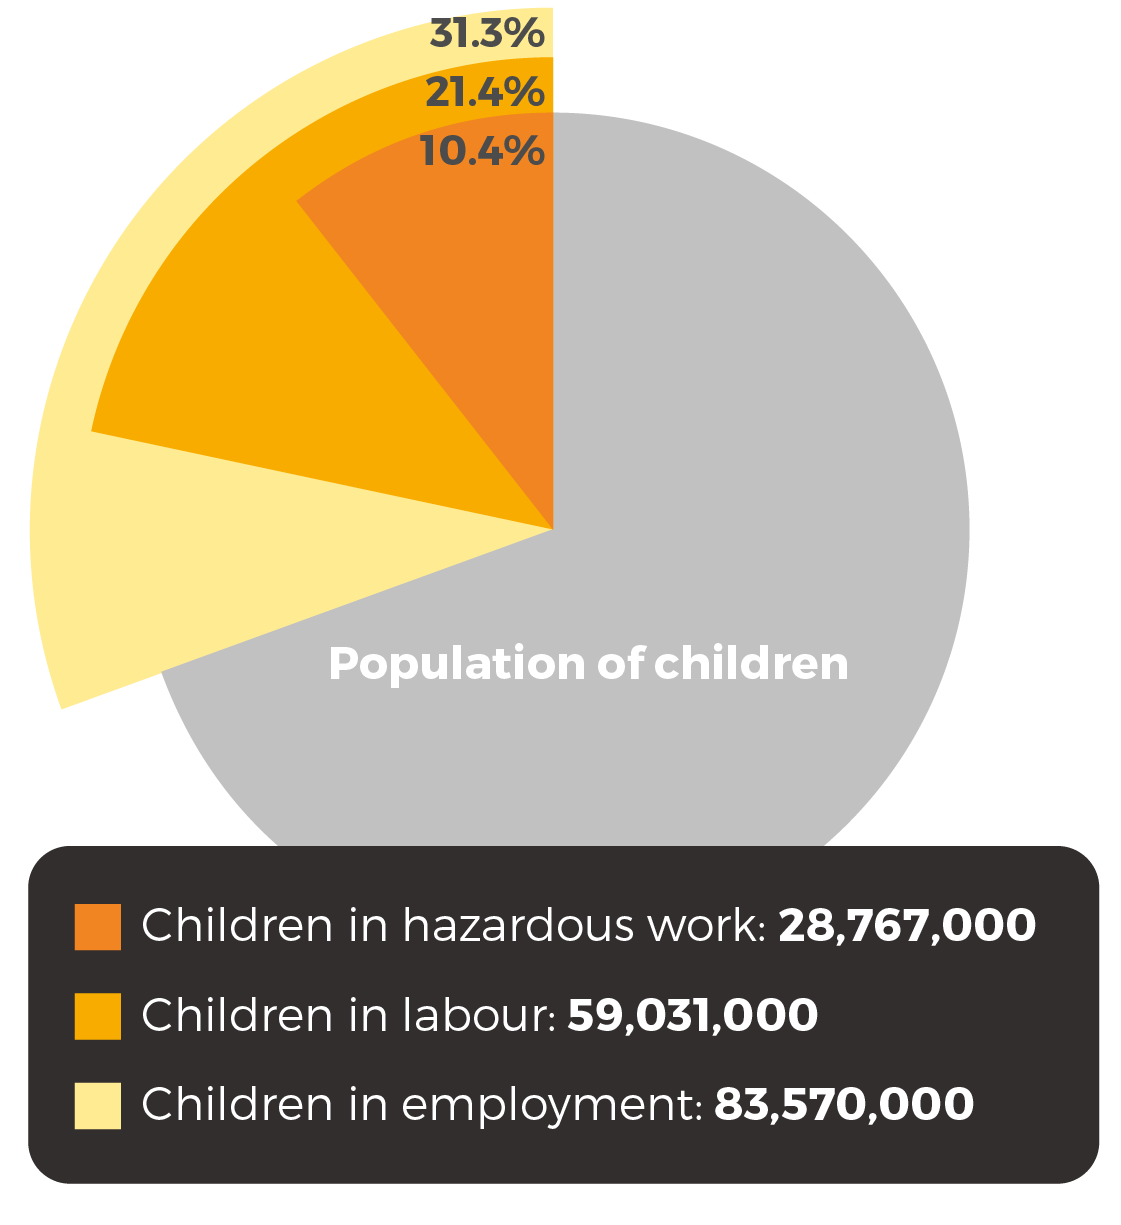 83.6m children are in employment; 59m are in child labour and 28.8m in hazardous work